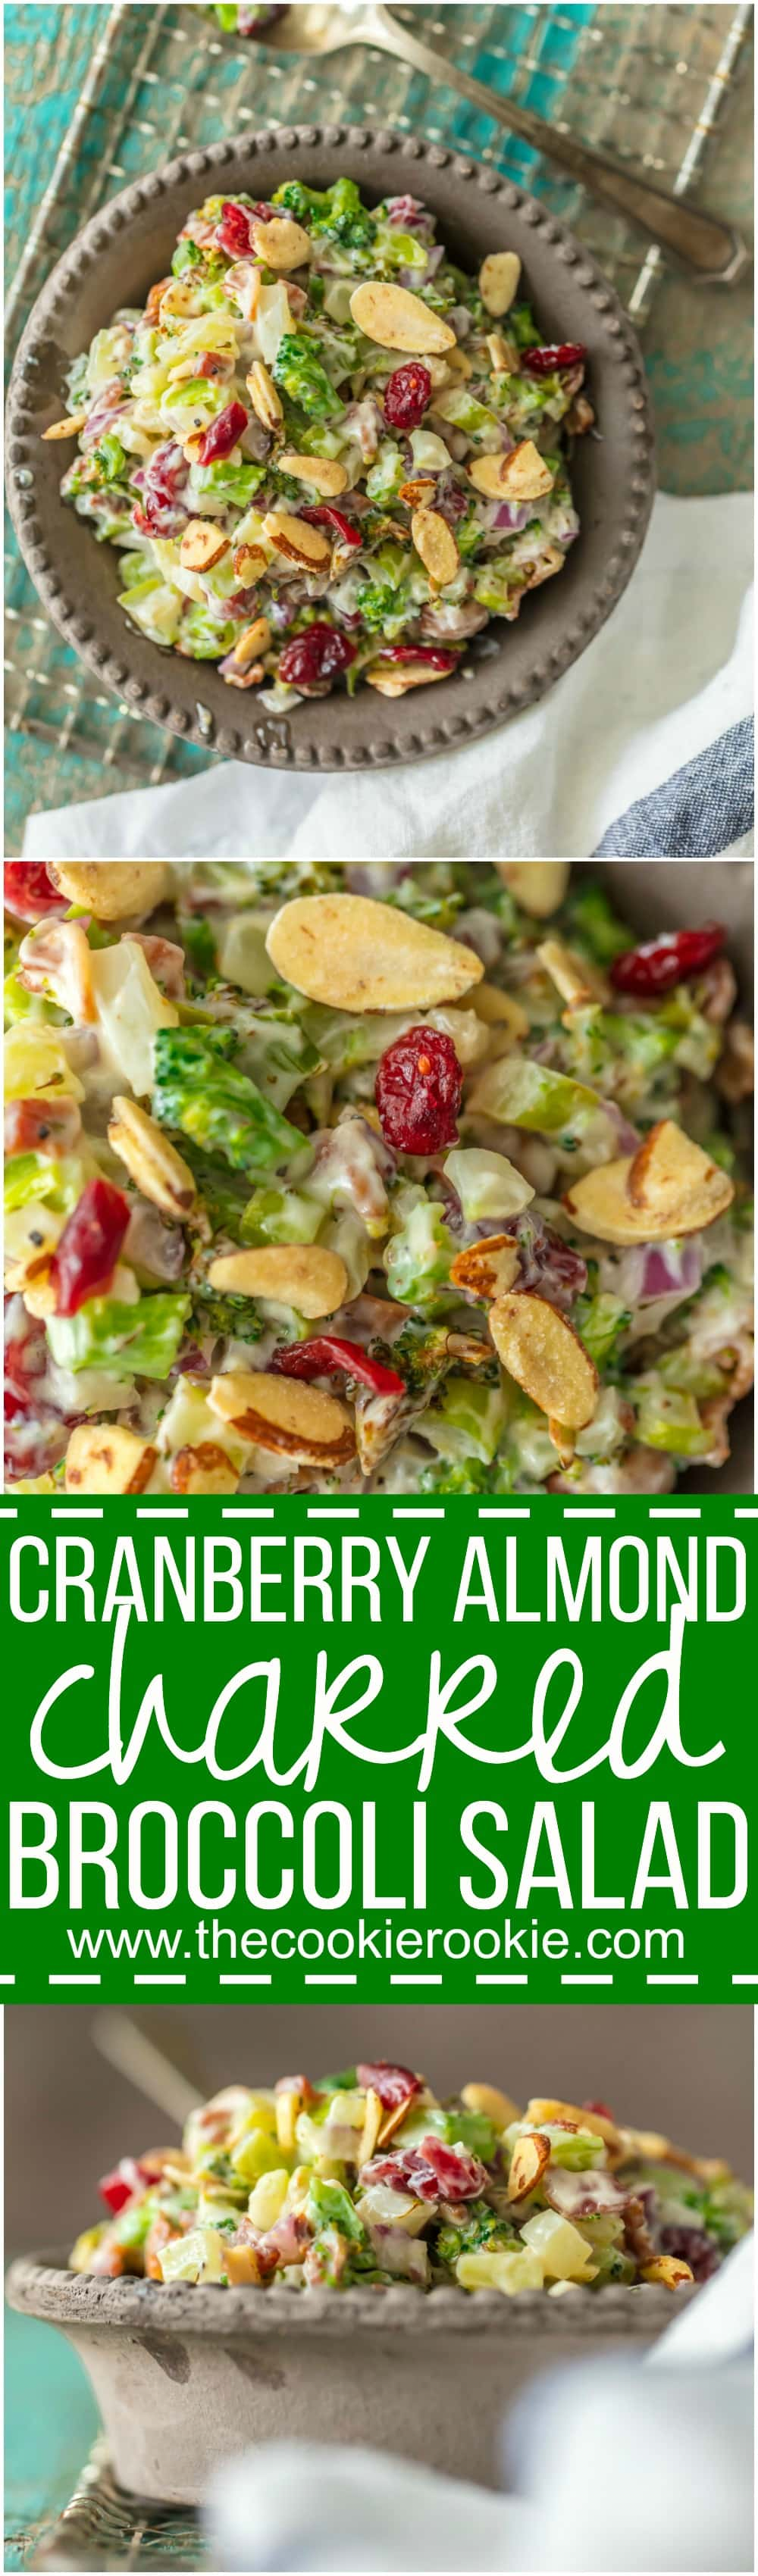 Cranberry Almond Charred Broccoli Salad is a twist on a holiday classic! With so much flavor, this delicious charred broccoli salad is sure to be your favorite Thanksgiving or Christmas side dish!